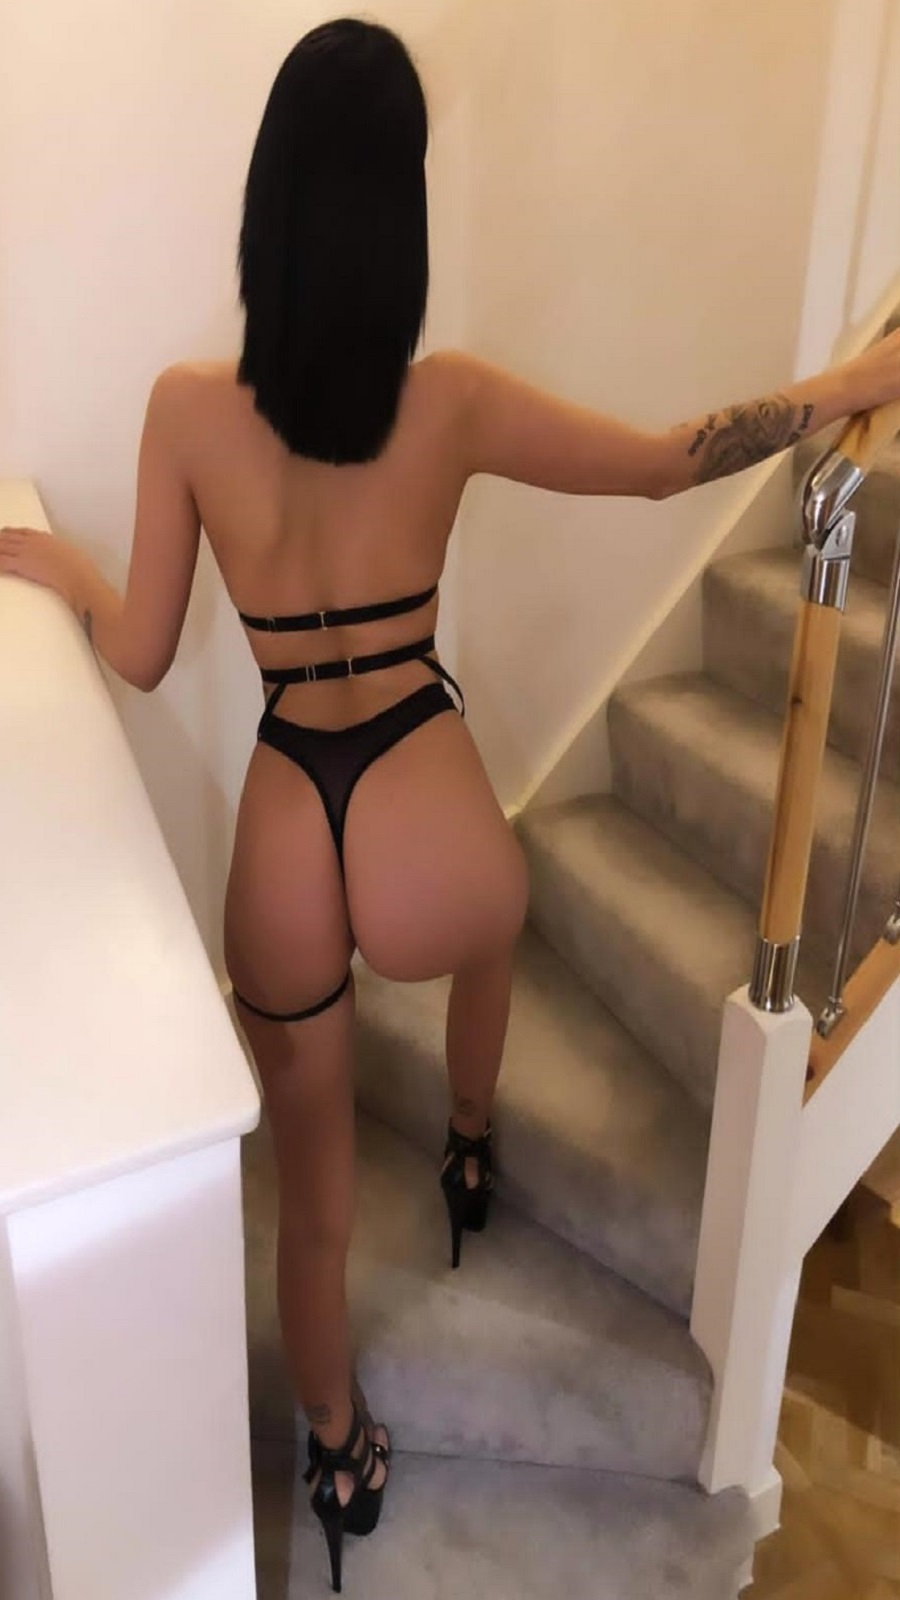 If you are looking for the perfect companion tonight give us a call on 07412621234 to book Christina for the best night of your life.